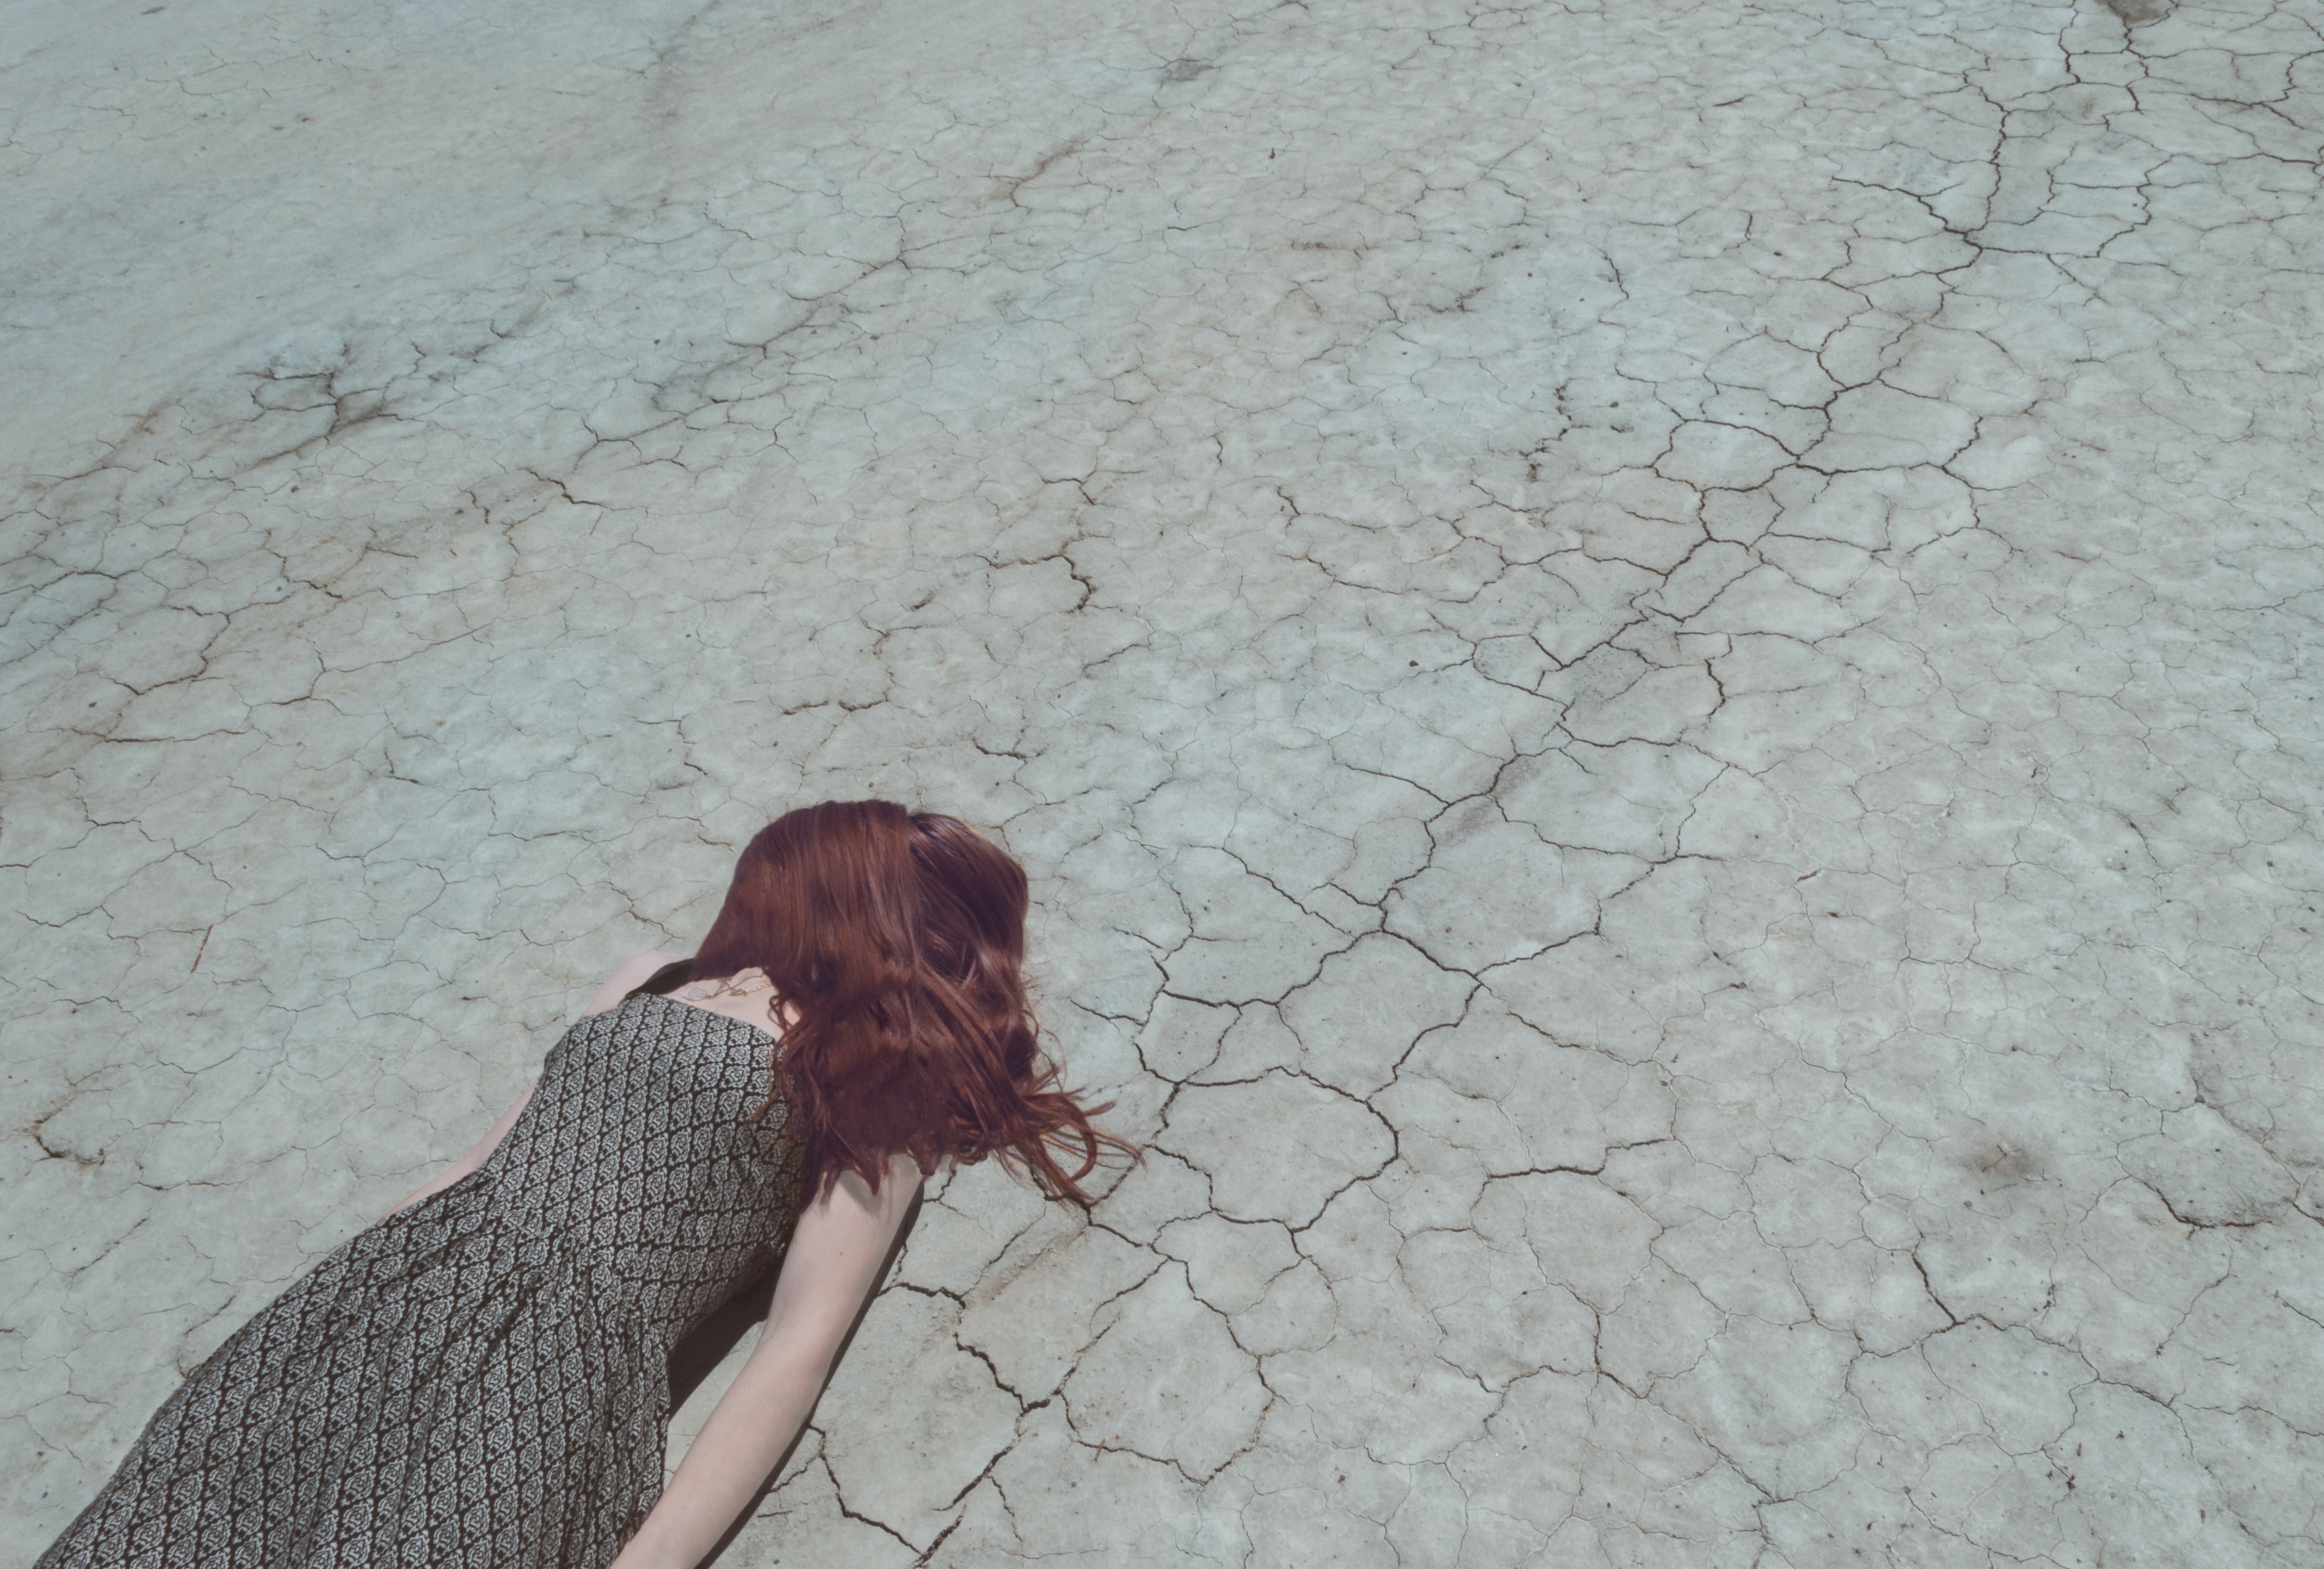 Woman with hair over face lying down on cracked desert floor